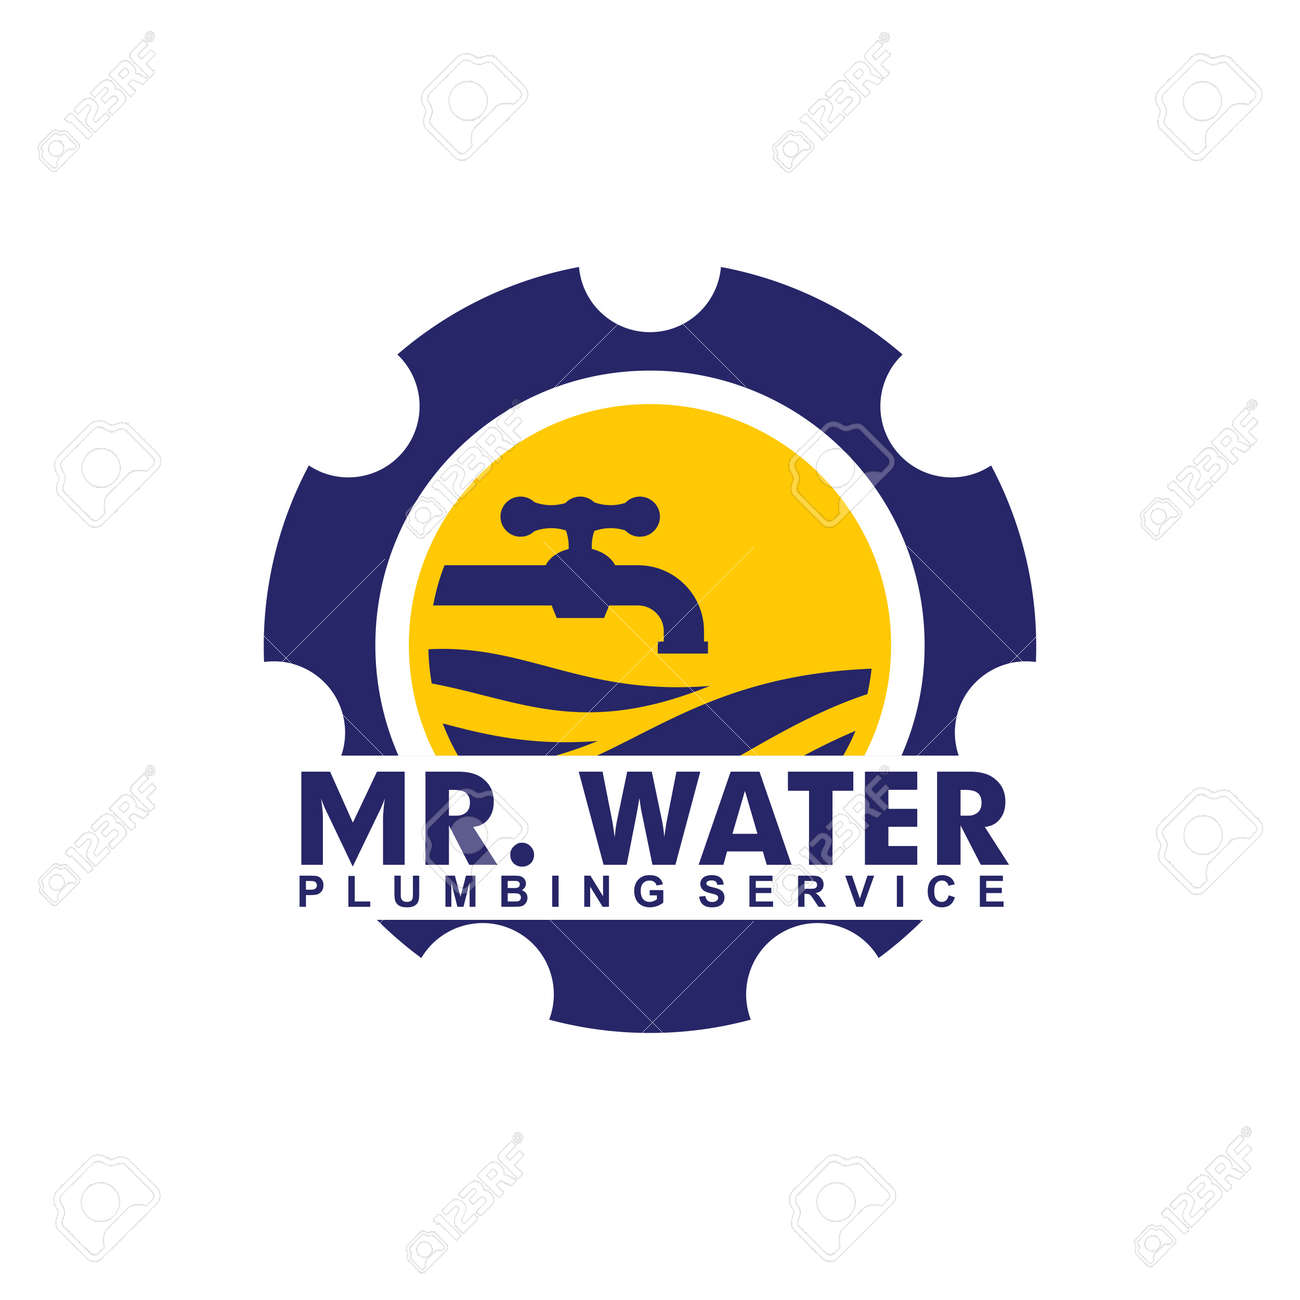 Industrial business company logo design with using gear icon vector template - 157618481